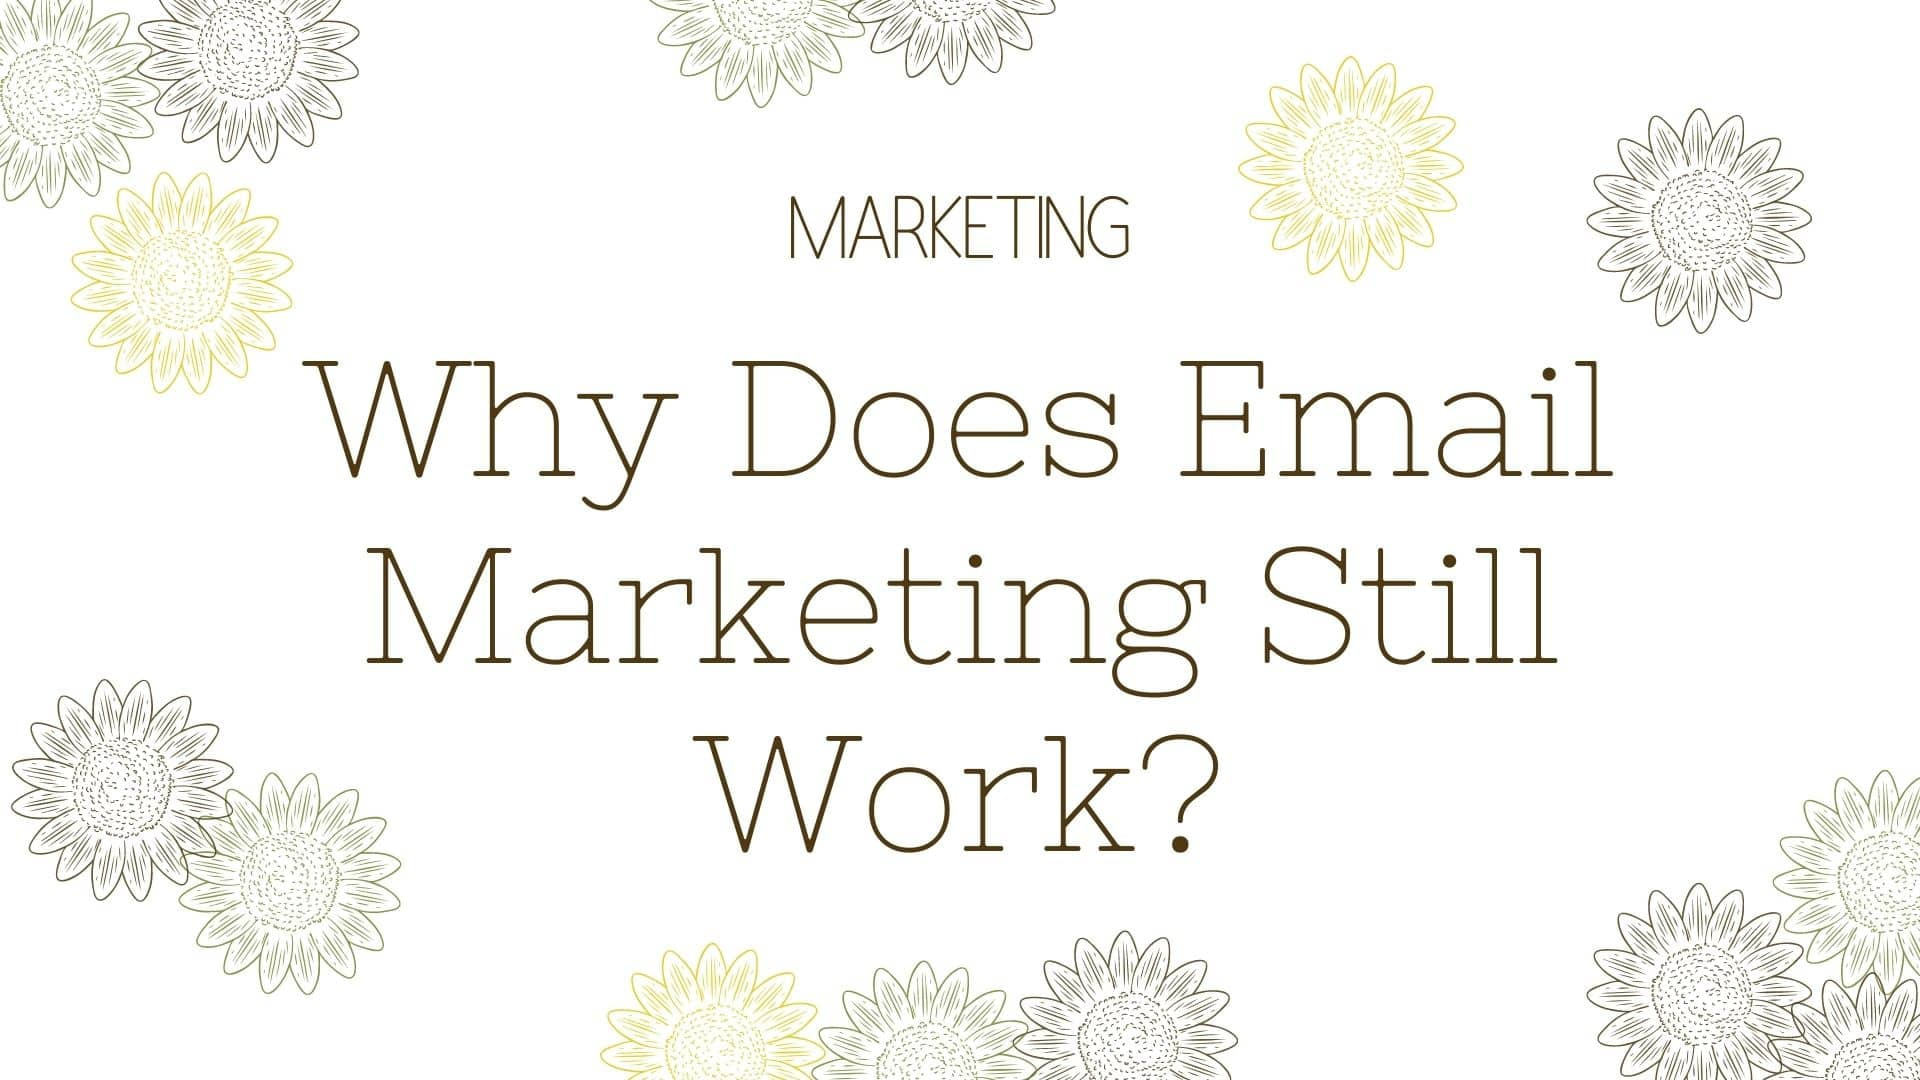 Why Does Email Marketing Still Work